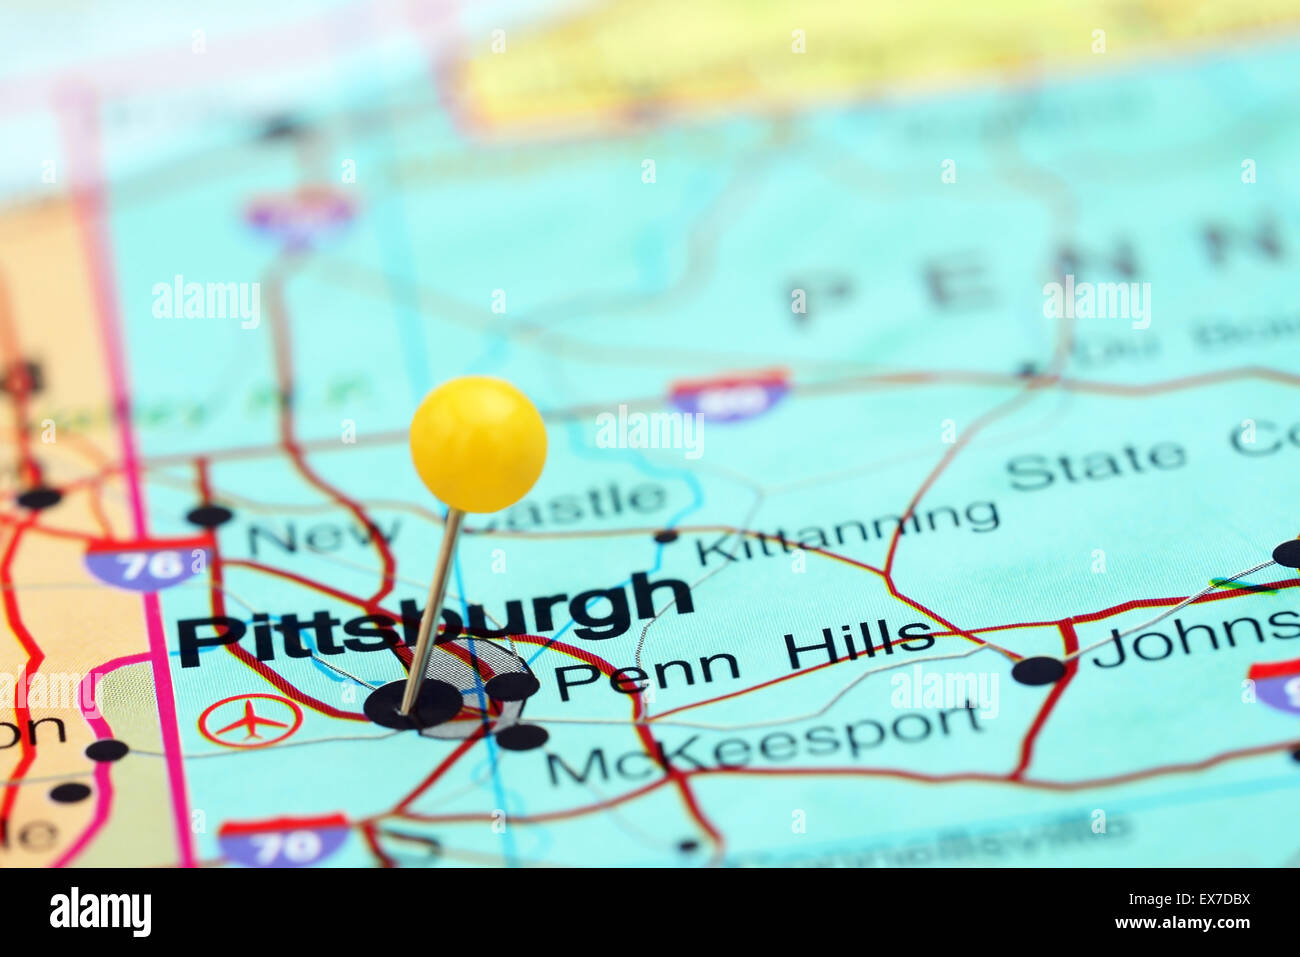 Pittsburgh On Map Of Usa.Pittsburgh Pinned On A Map Of Usa Stock Photo 84986718 Alamy